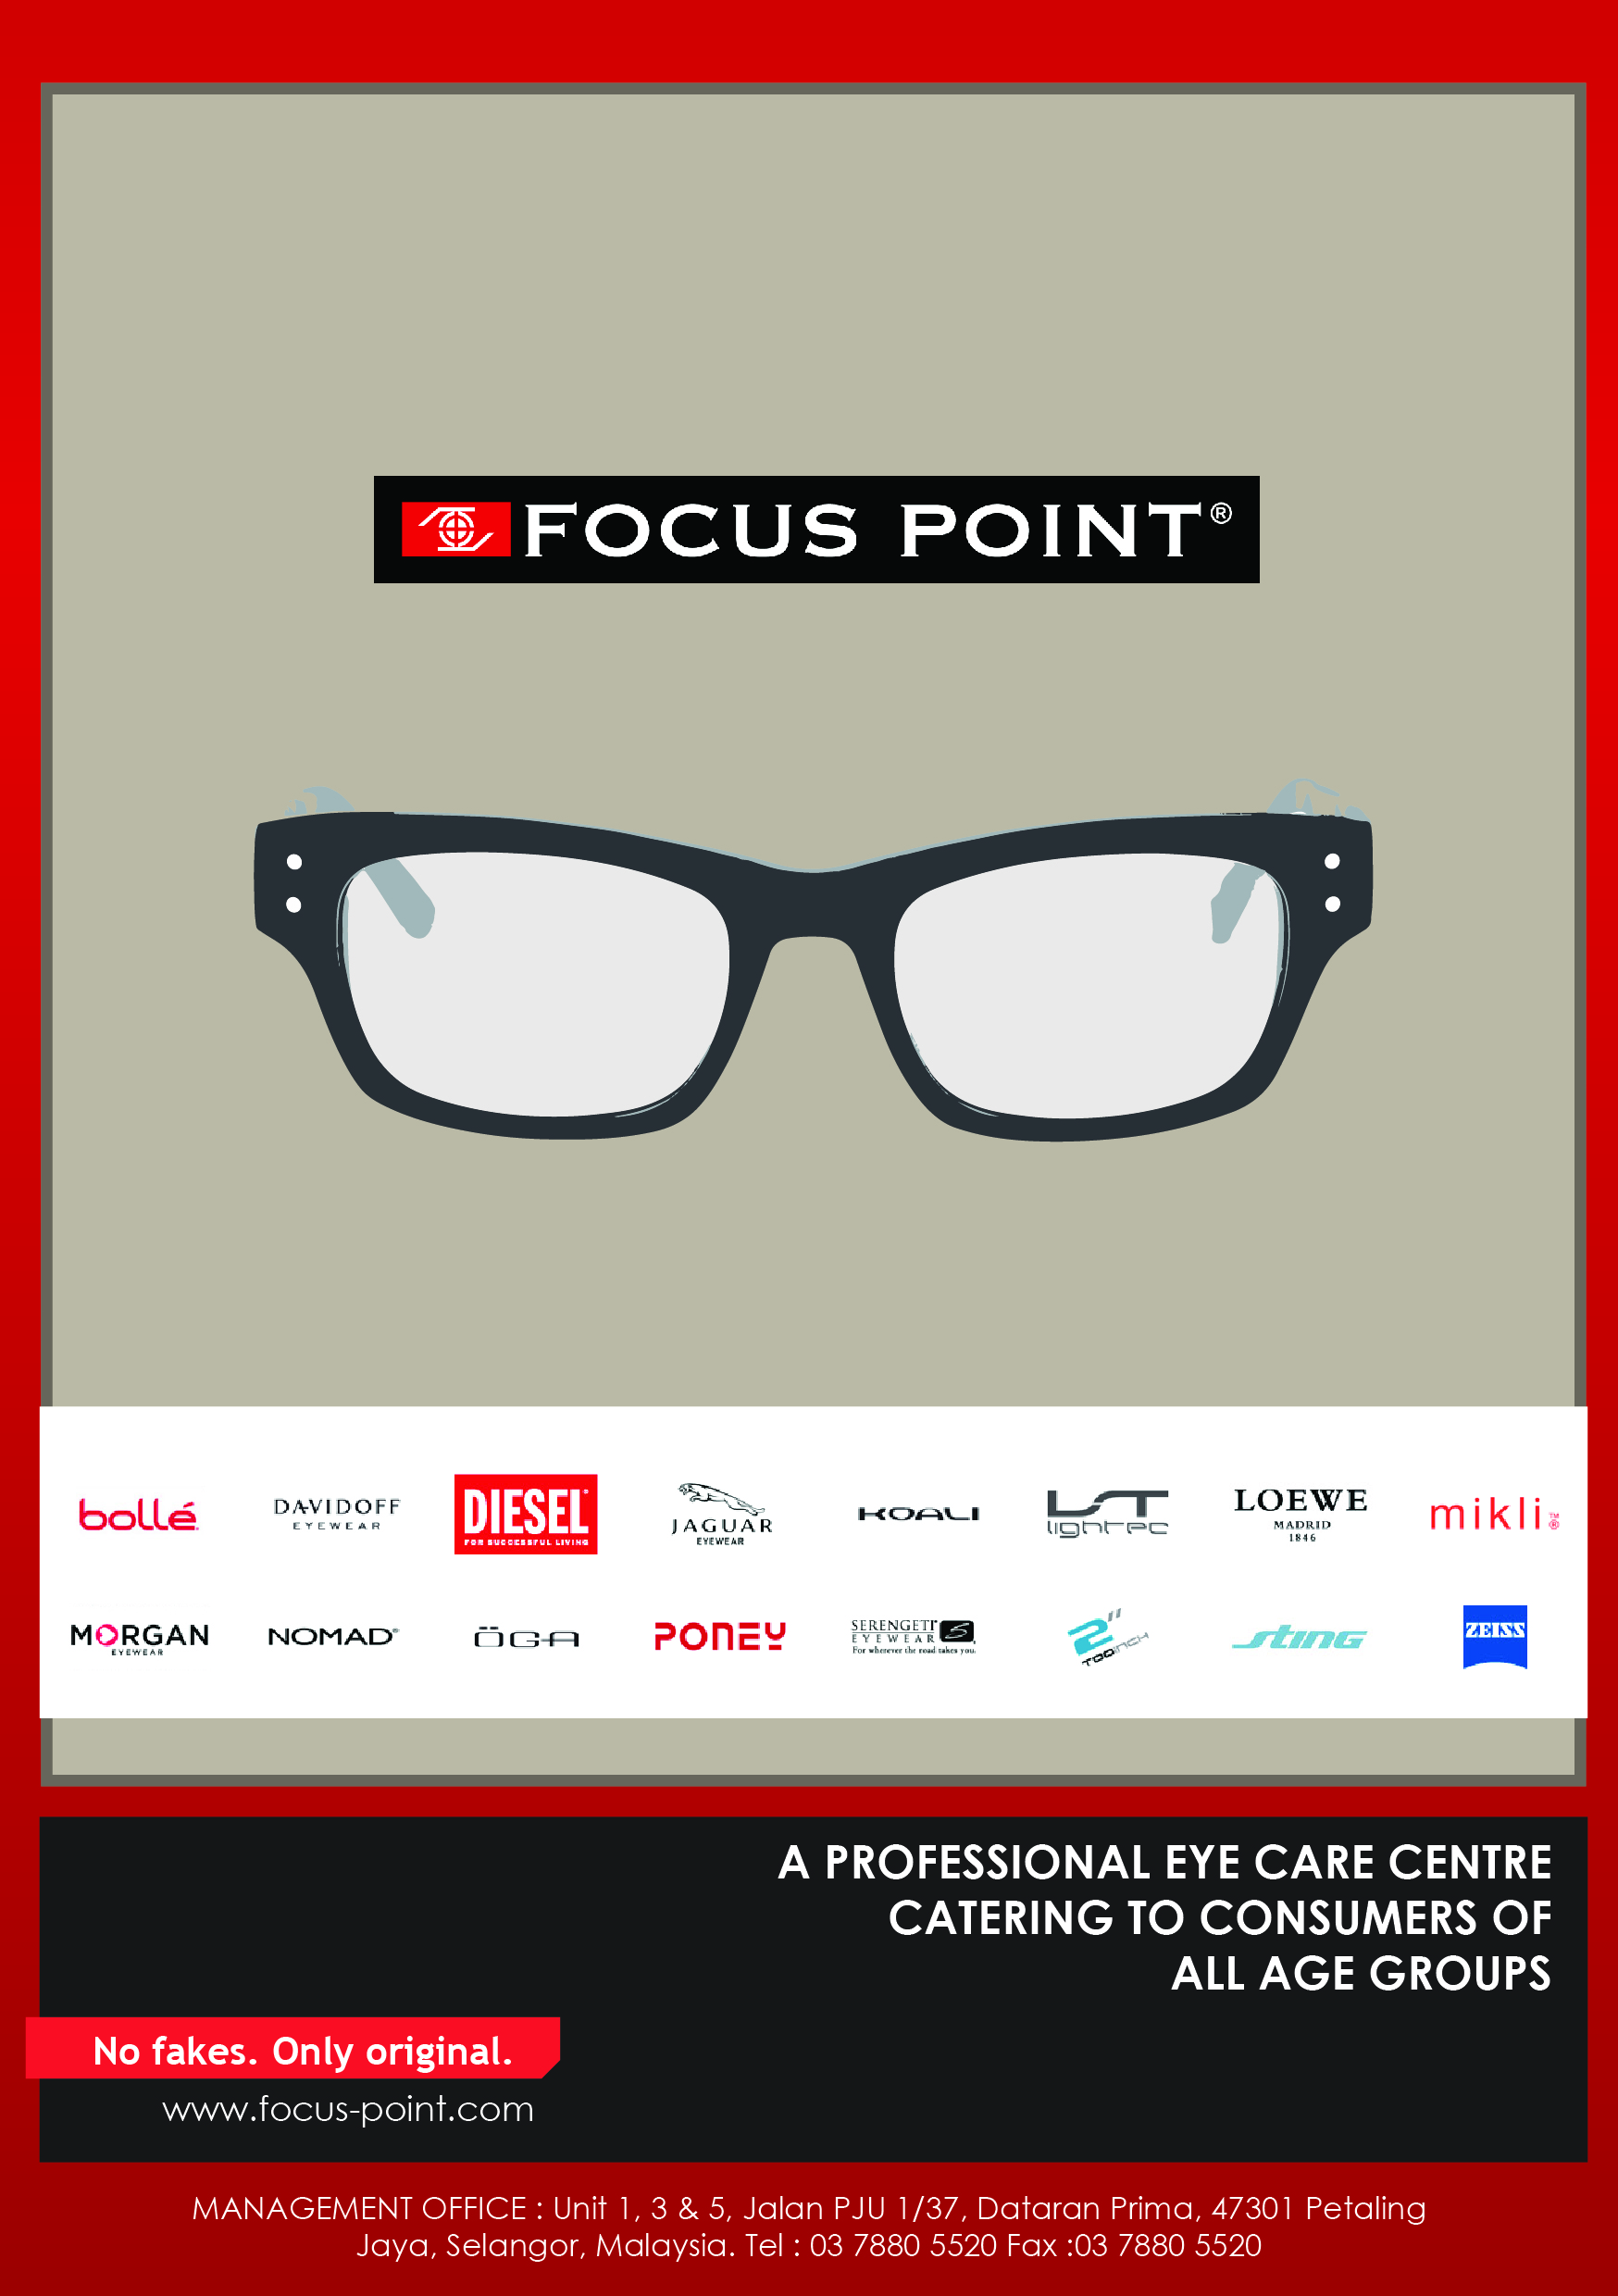 Focus Point Sunglasses  10 off all frame and sunglasses from focus point